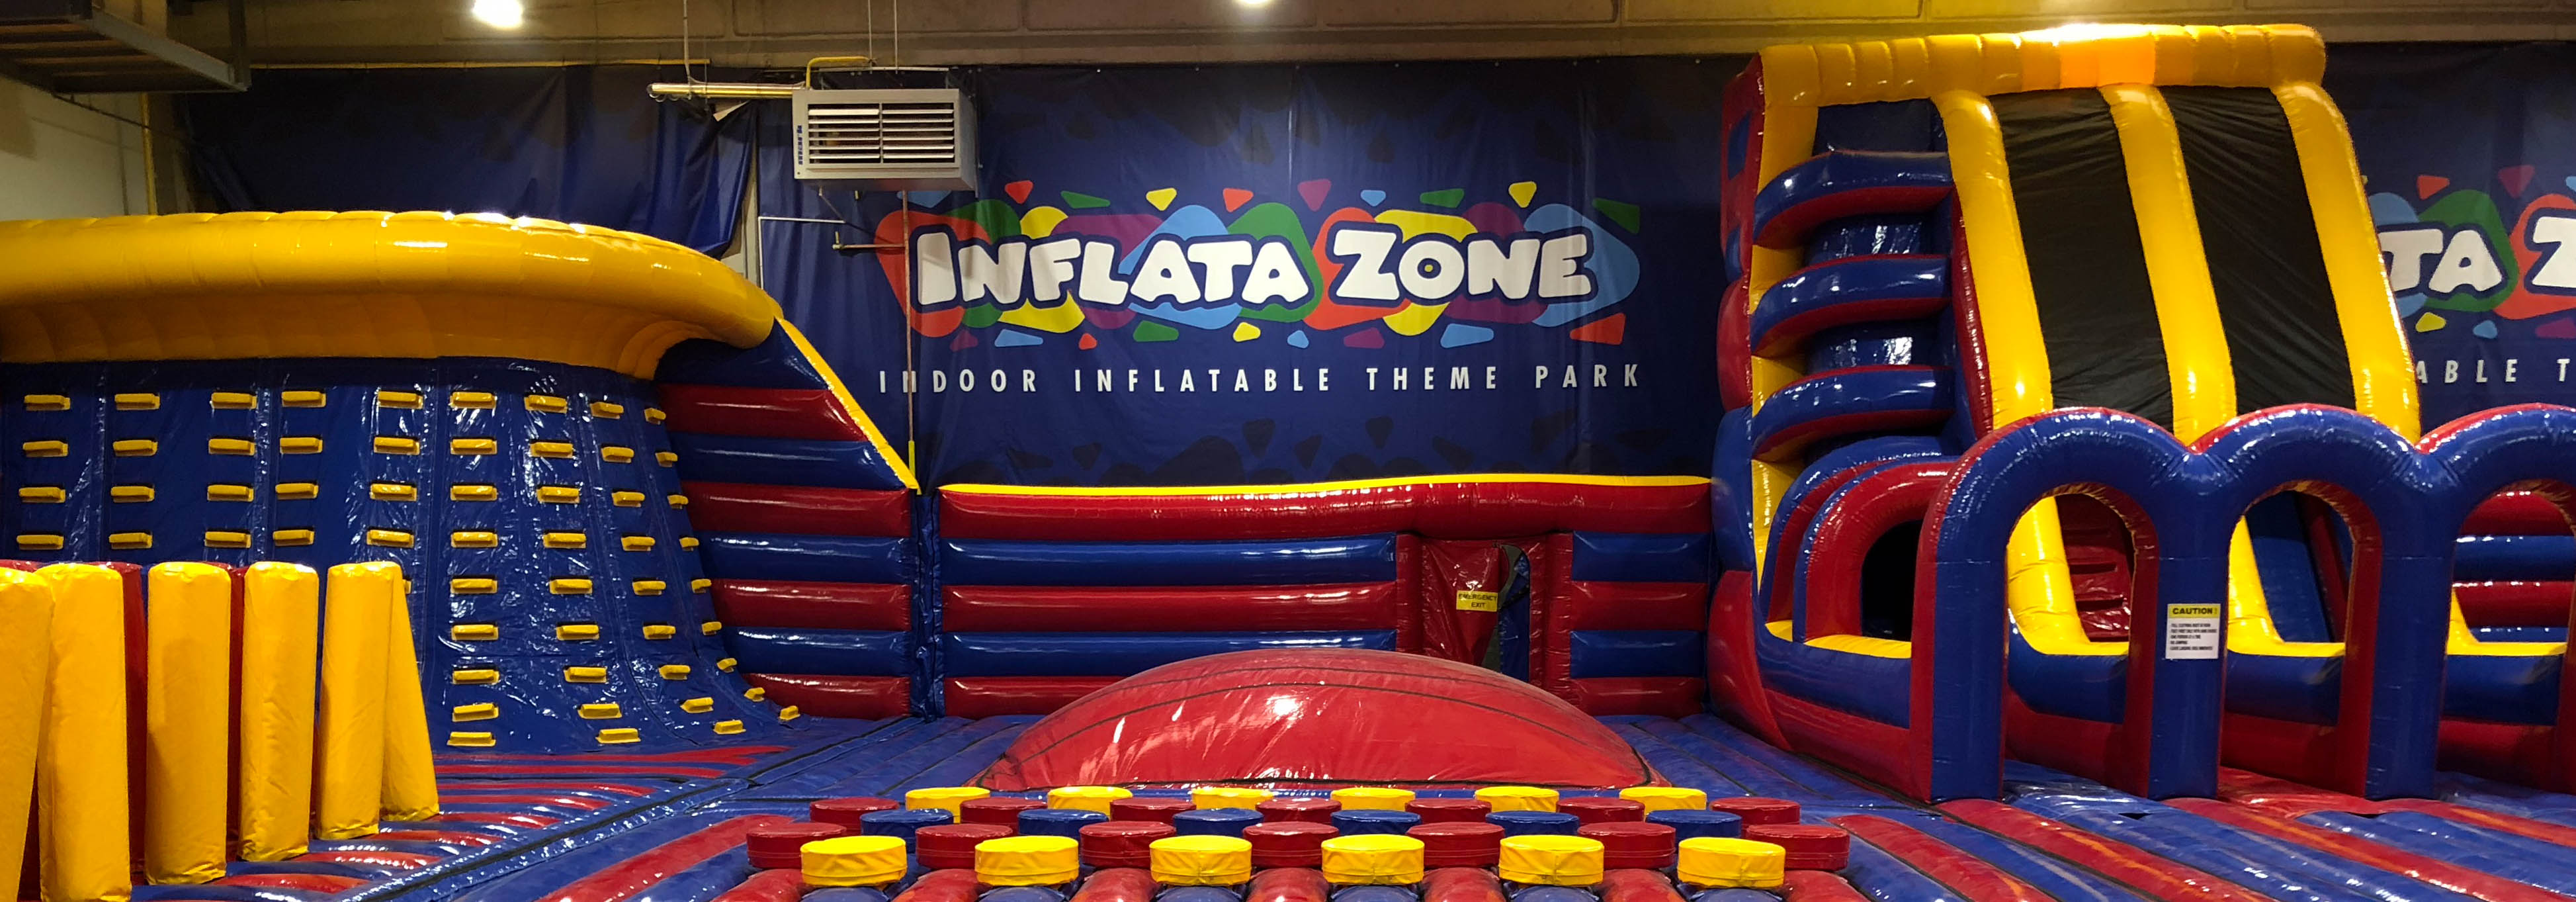 red and blue themed Inflatazone inflatable theme park